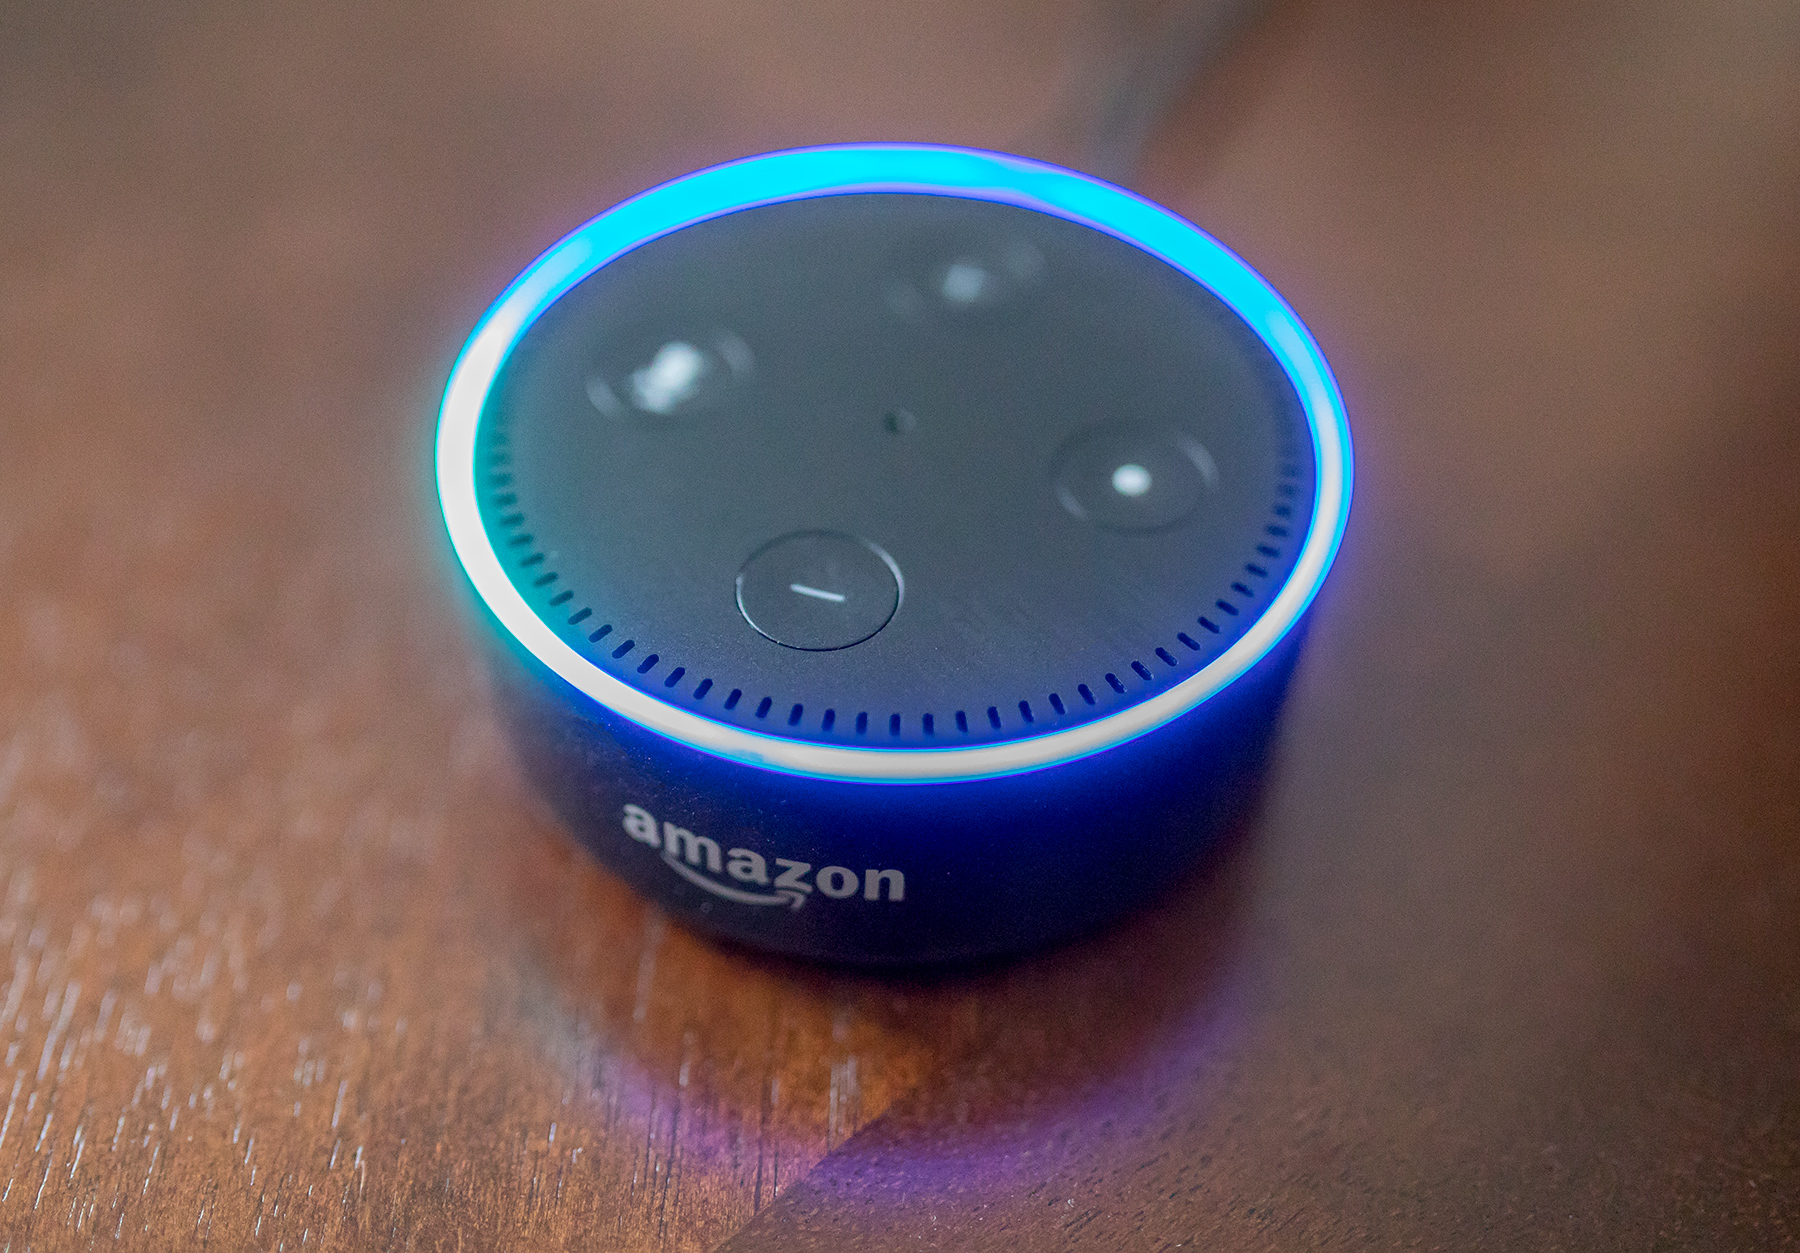 Alexa's new 'Brief Mode' makes the assistant talk less